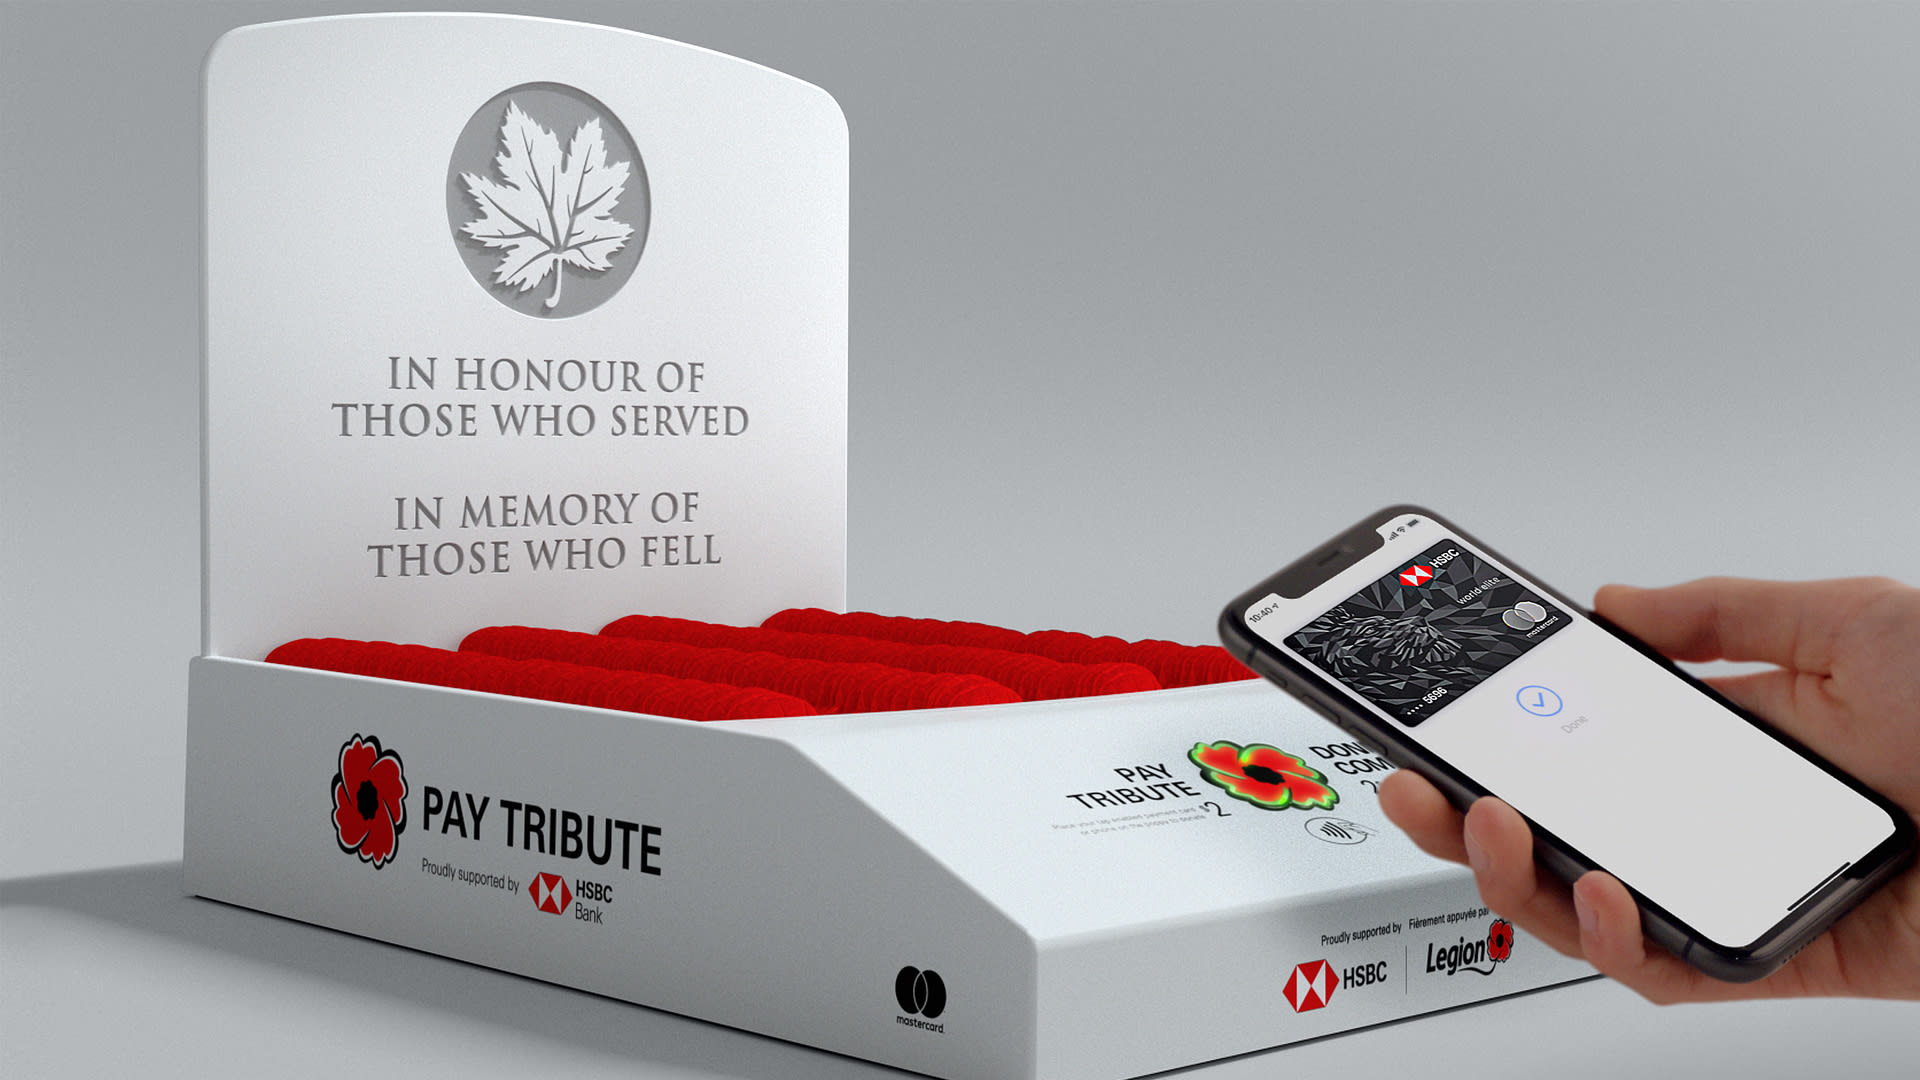 """White background, Pay Tribute box containing poppies. Hand in front holding cellphone with the HSBC RCL Pay Tribute App. Words on the box """"In honour of those who served. In memory of those who fell."""